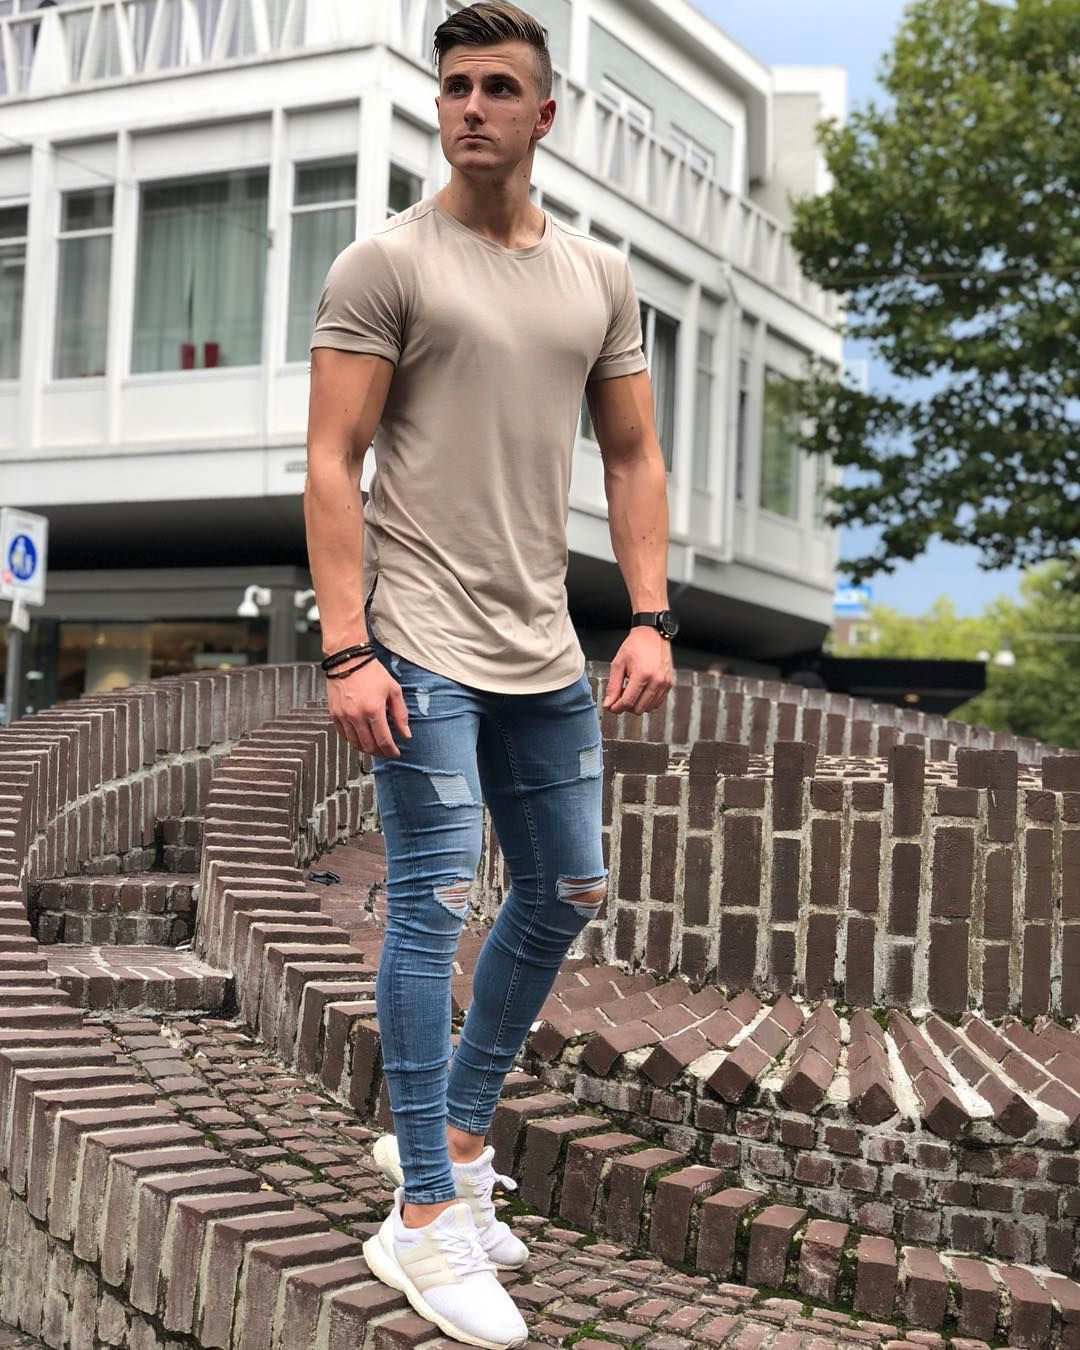 Jasper On Instagram Ho Ho Ho Wishing You A Merry Everyday And A Happy Always Hope Ya Ll Have A Nice Mens Outfits Urban Street Style Hot Jeans